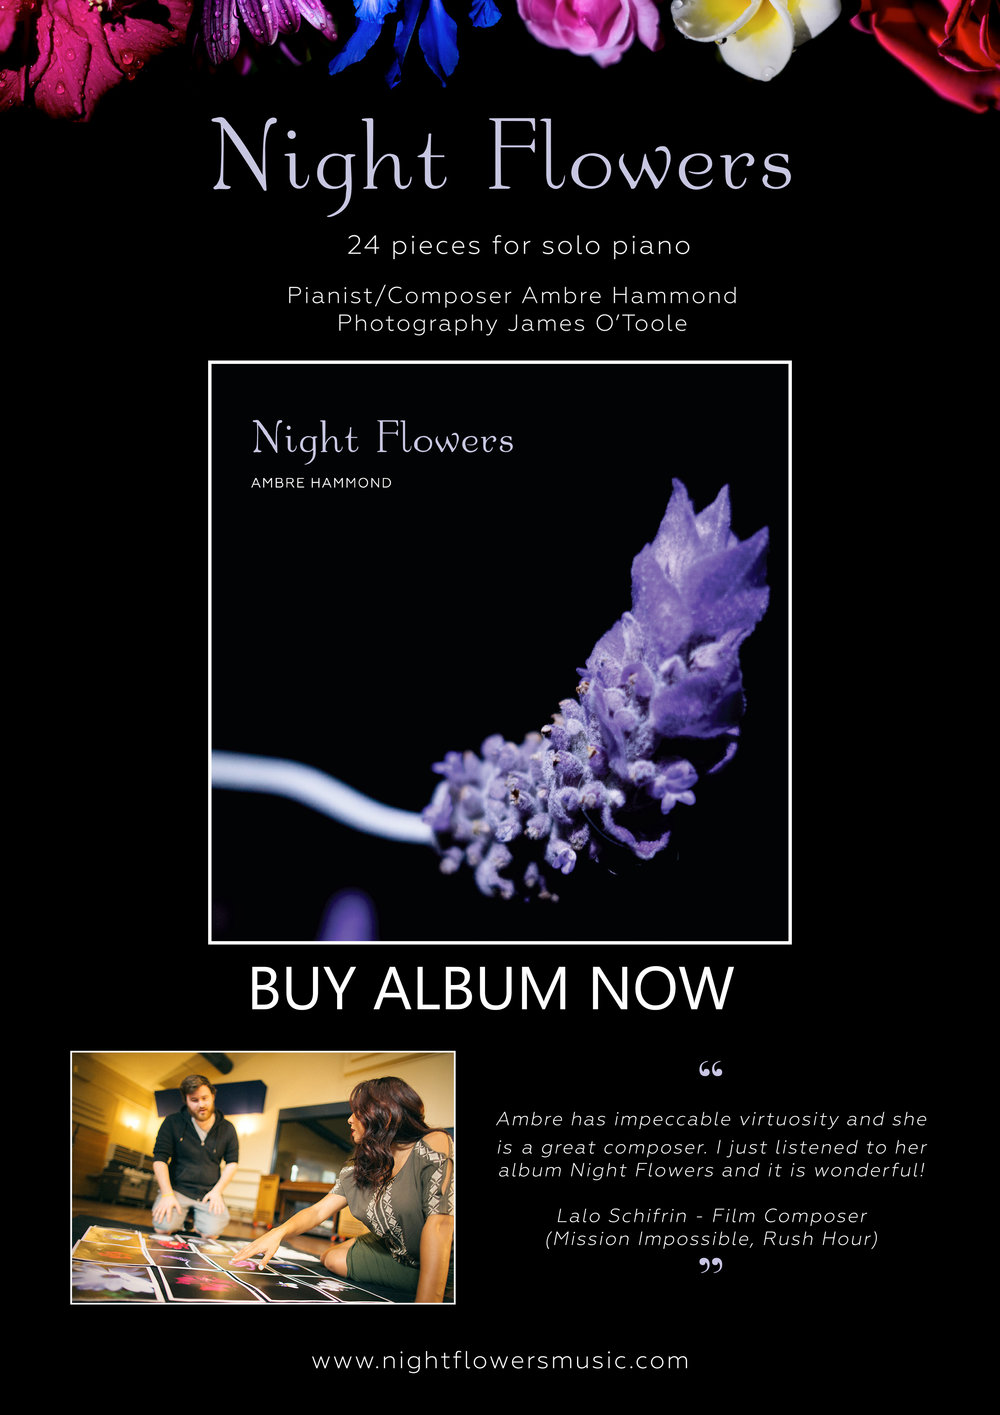 nightflowers_promoposter.jpg